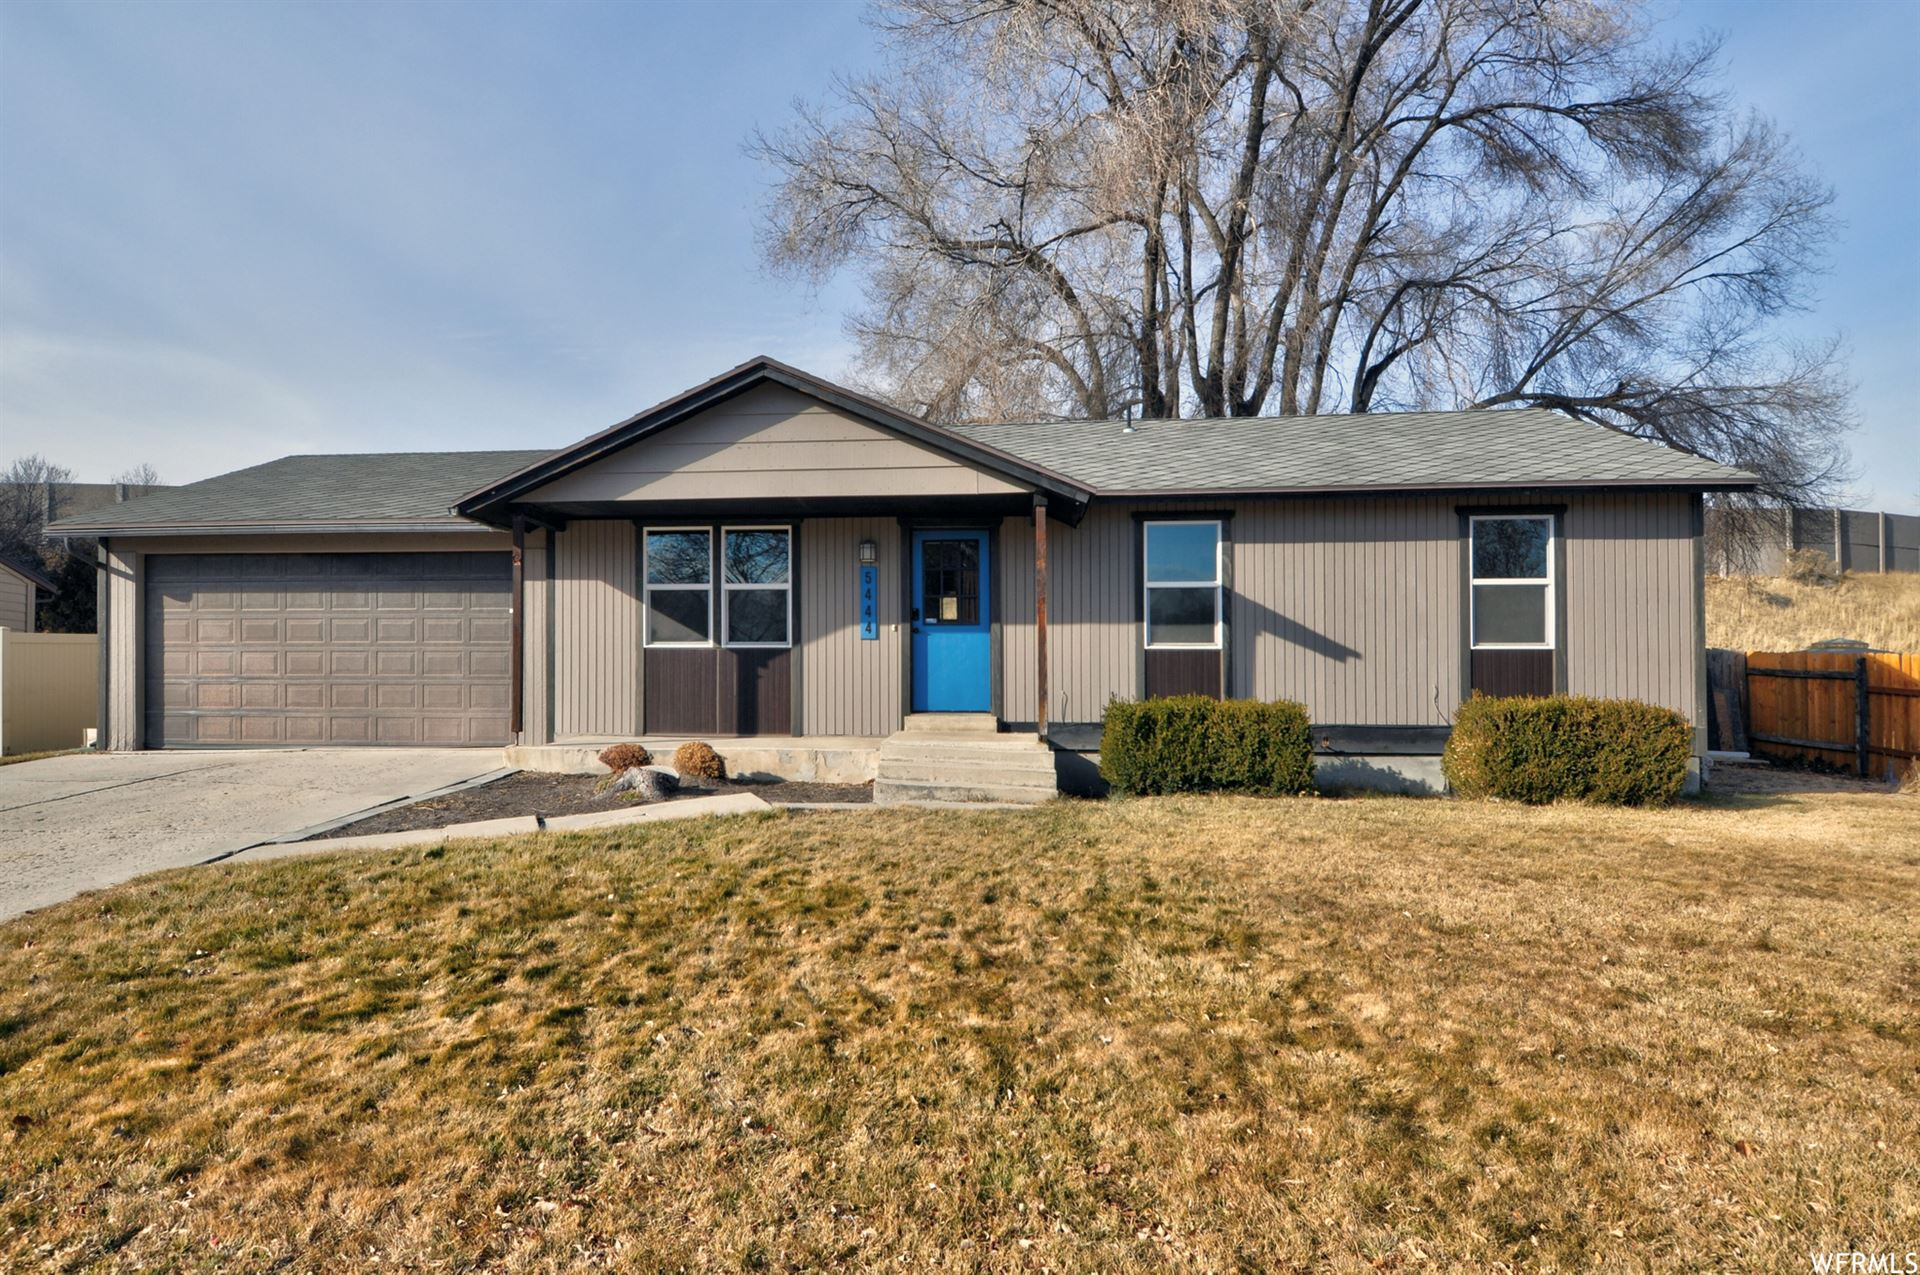 Photo of 5444 S CAPITOL REEF DR, Taylorsville, UT 84129 (MLS # 1721220)